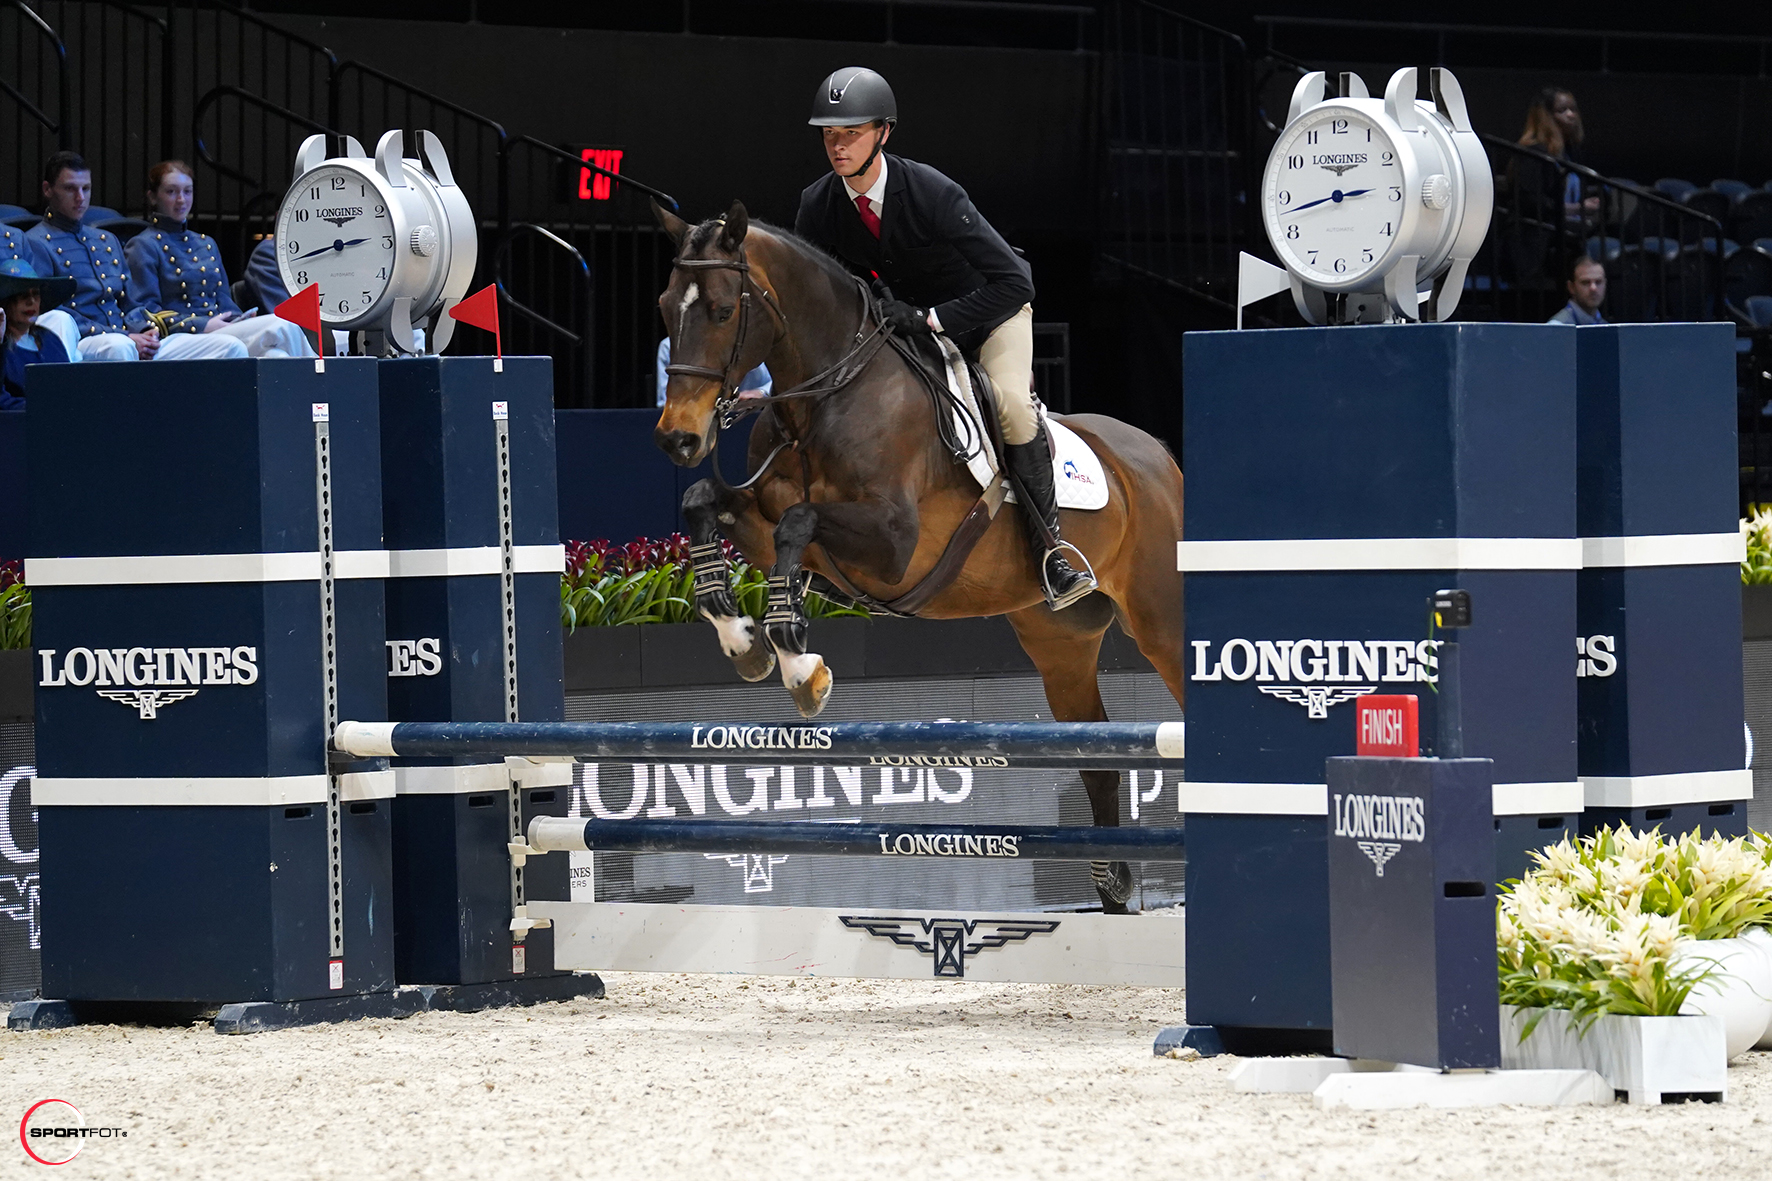 Michael Golinowski and Orion, provided by Orion Training Stable. Photo by Sportfot